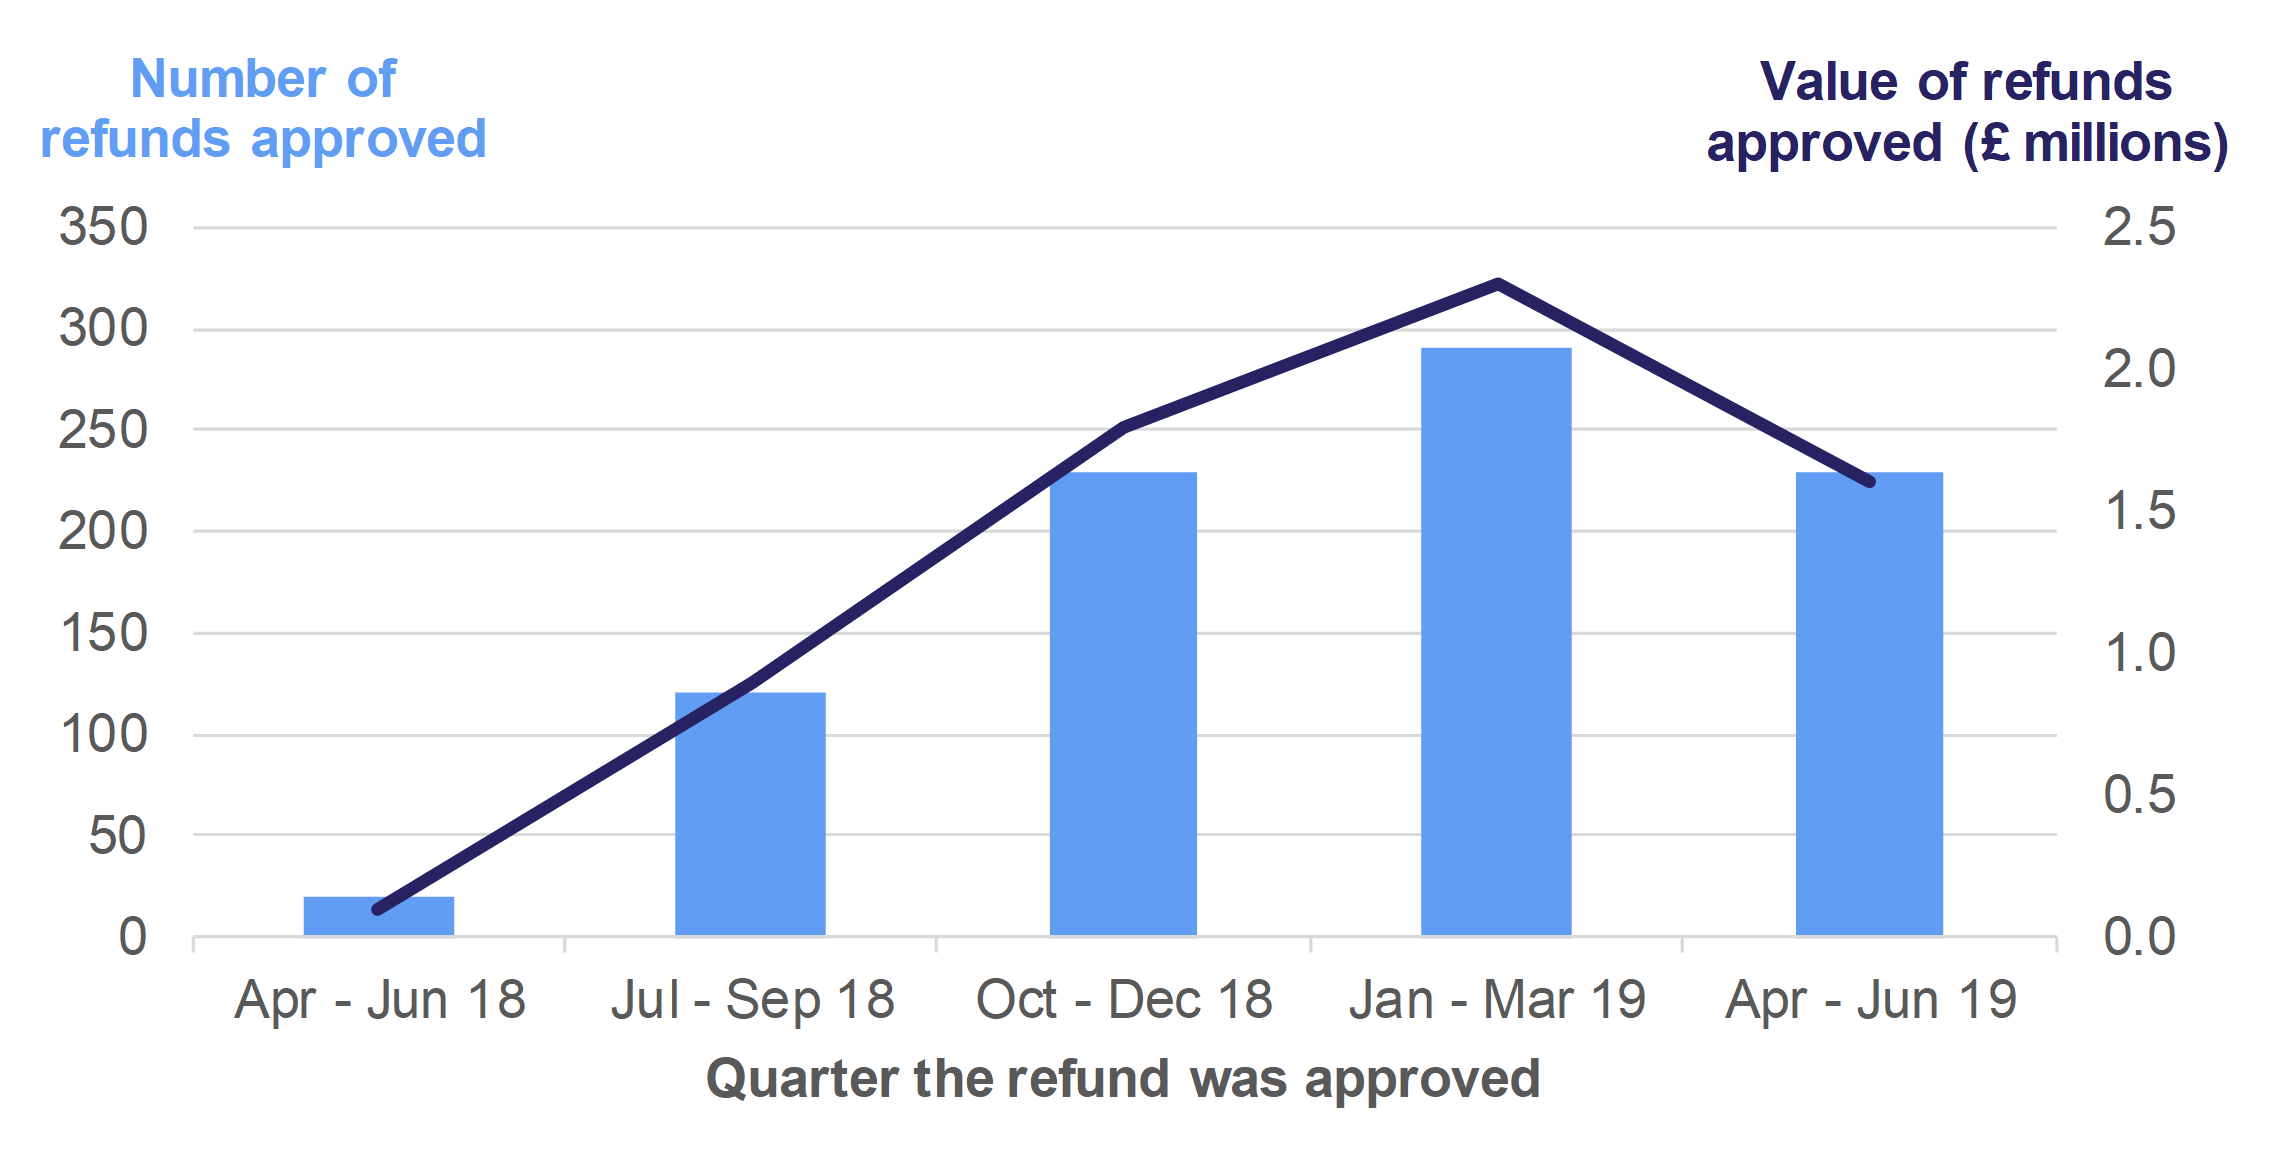 Figure 6.2 shows the number and value of refunds for higher rates residential issued, by the quarter in which the refund was approved by the WRA.